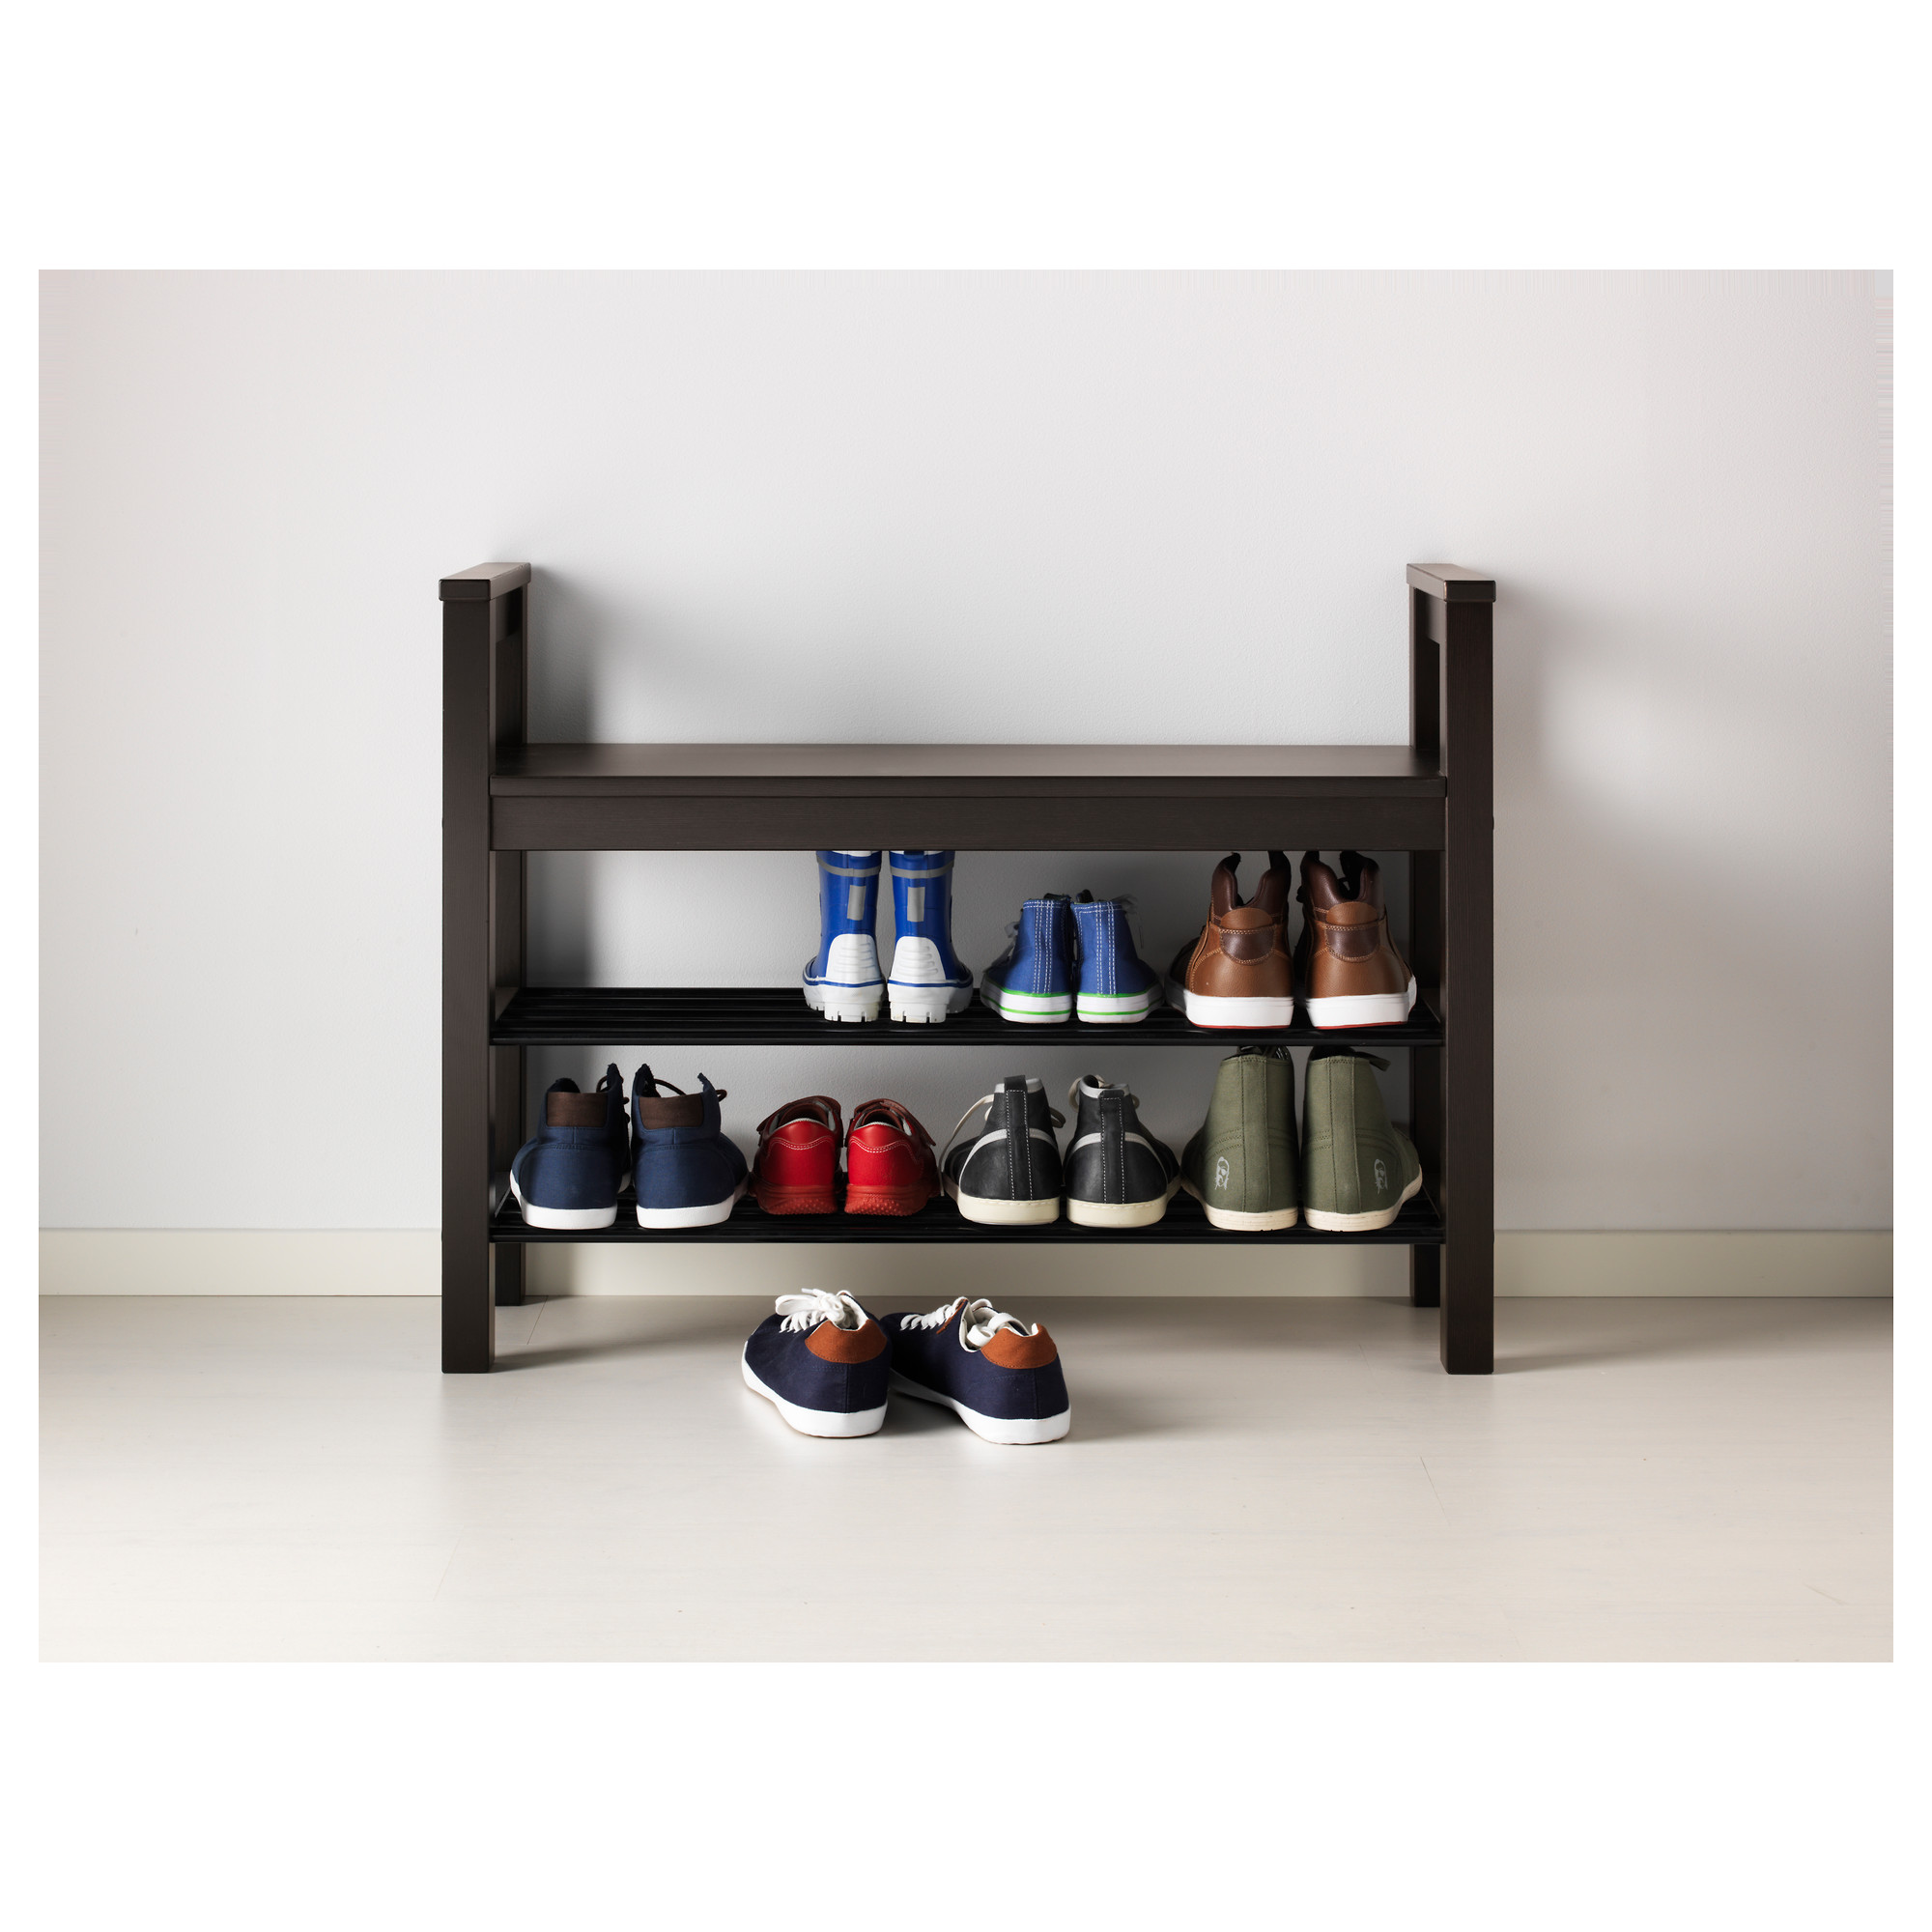 Design Ikea Shoe Racks hemnes bench with shoe storage white ikea